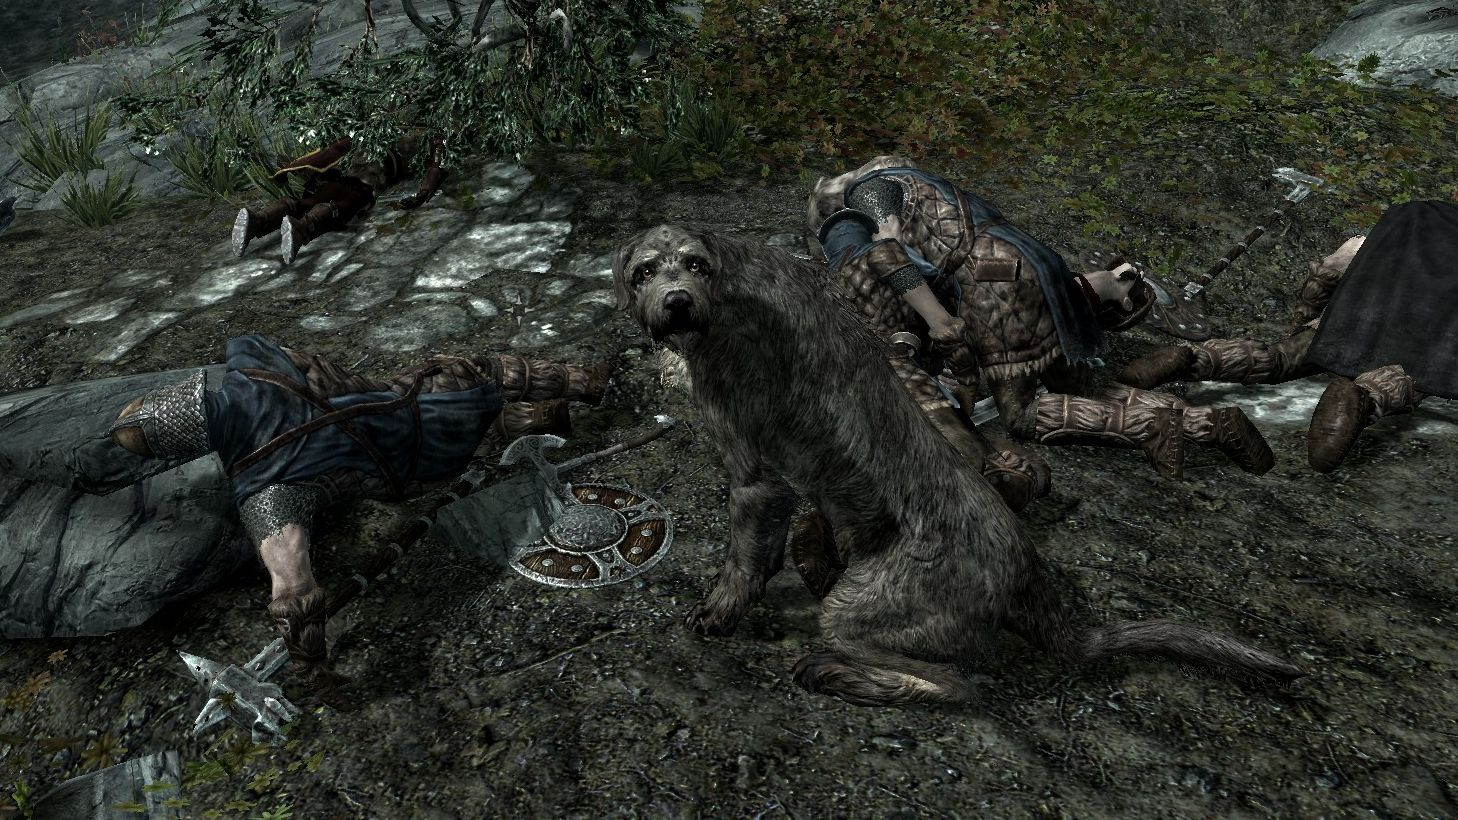 A screenshot of Barbas from Skyrim, a shaggy Irish wolfhound, looking at the camera with sad eyes.